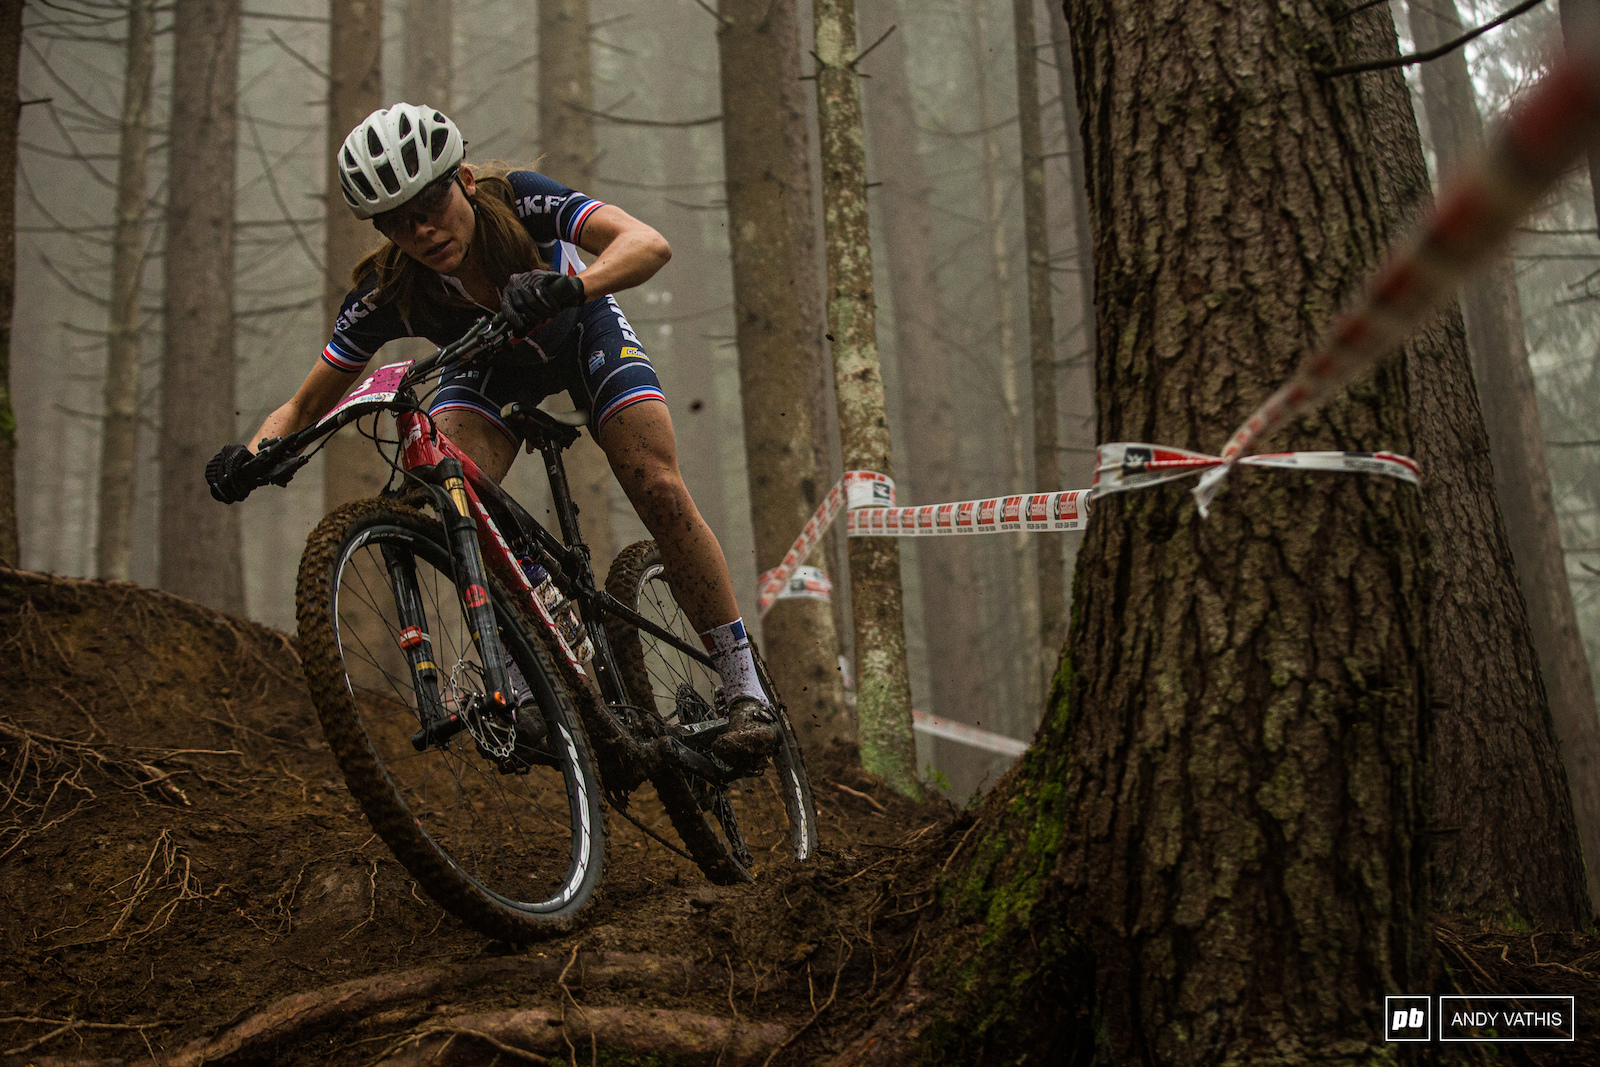 Loana Lecomte came out swinging and never looked back. The gap was just over a minute when she crossed the line.